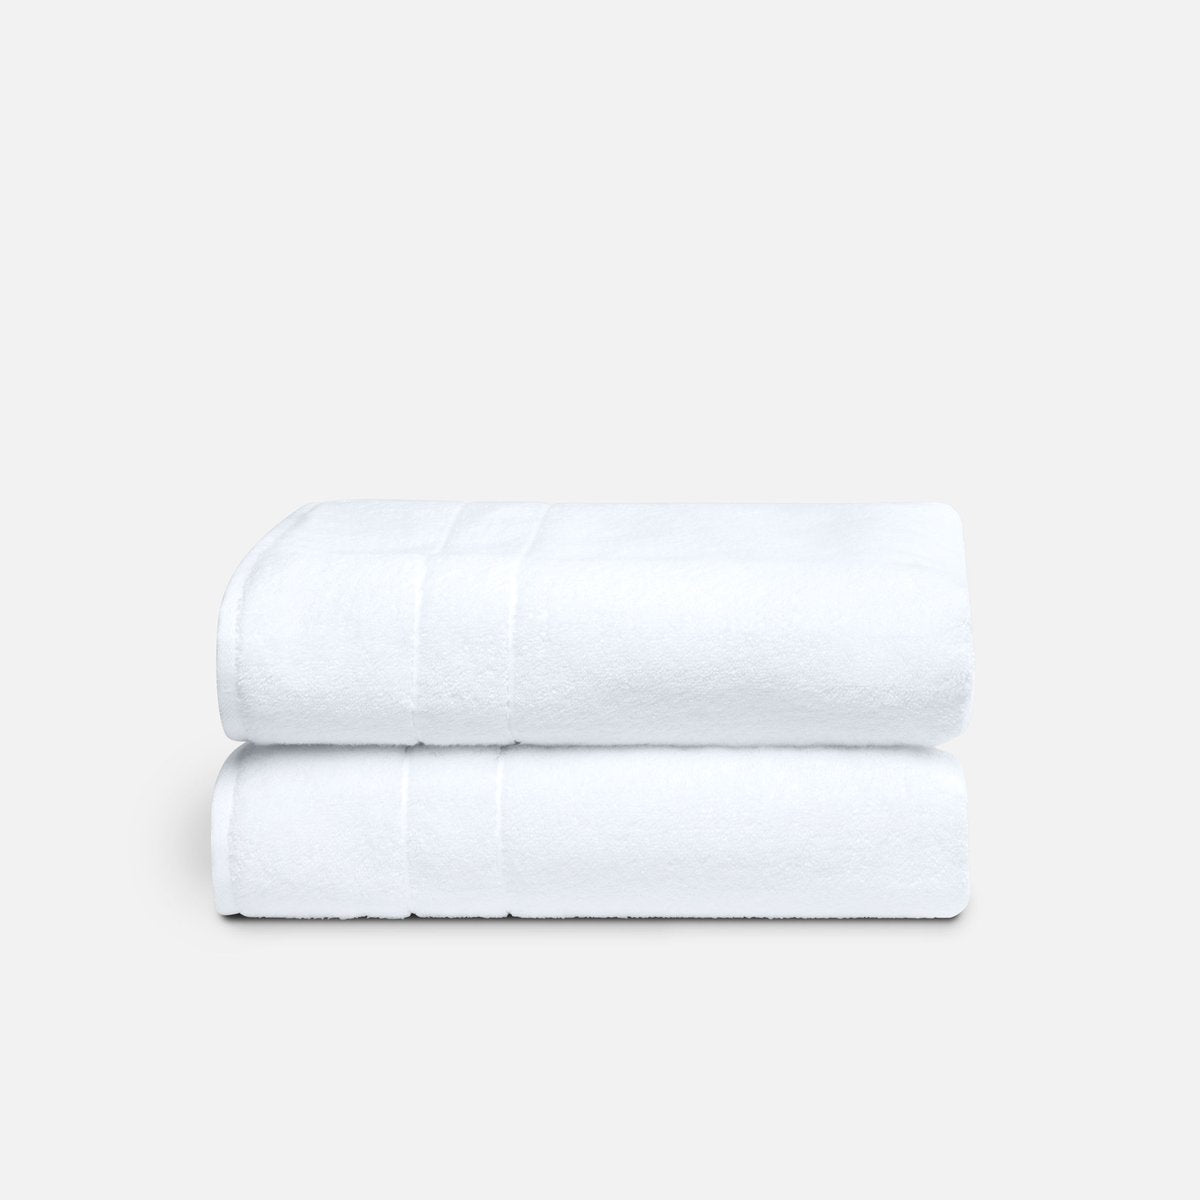 Stack of Super-Plush Bath Towels in White